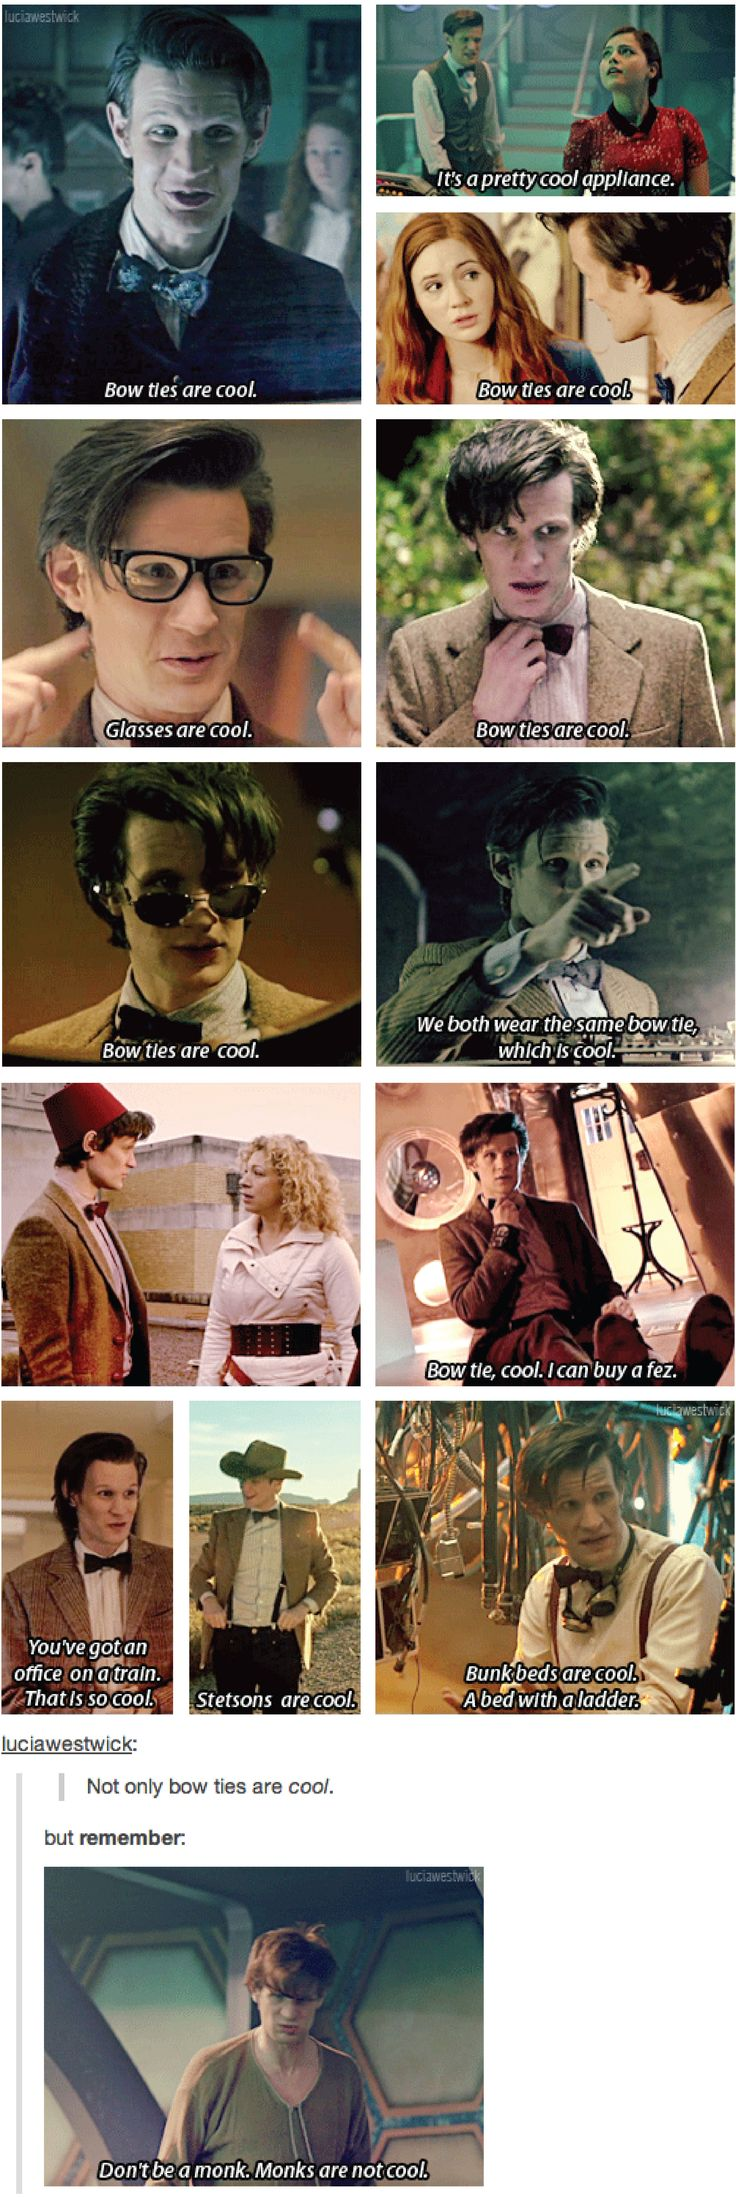 [gif set] Not only bow ties are cool.